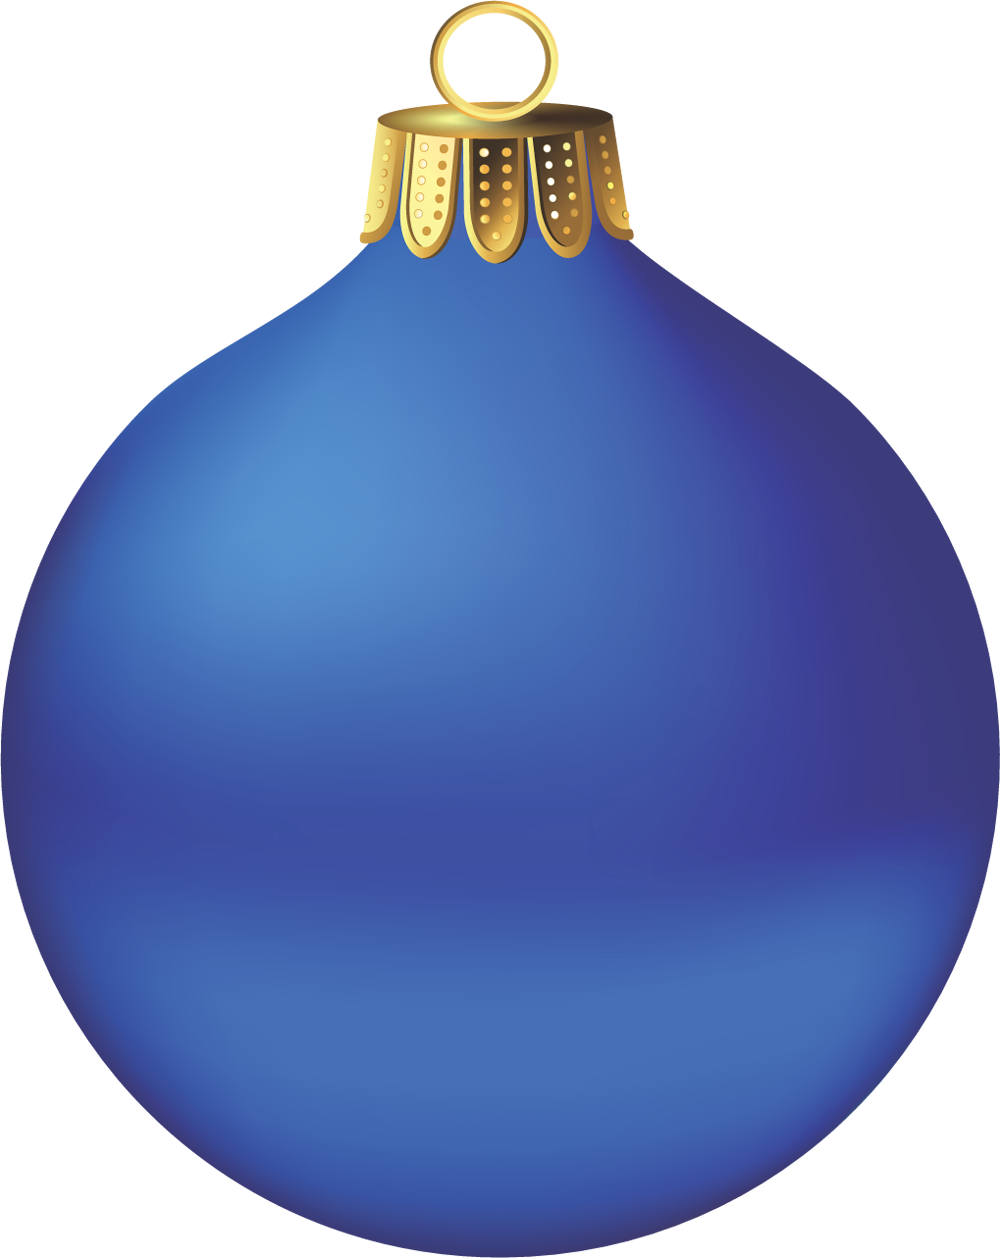 Transparent Christmas Blue Ornament Clipart - ClipArt Best - ClipArt ...